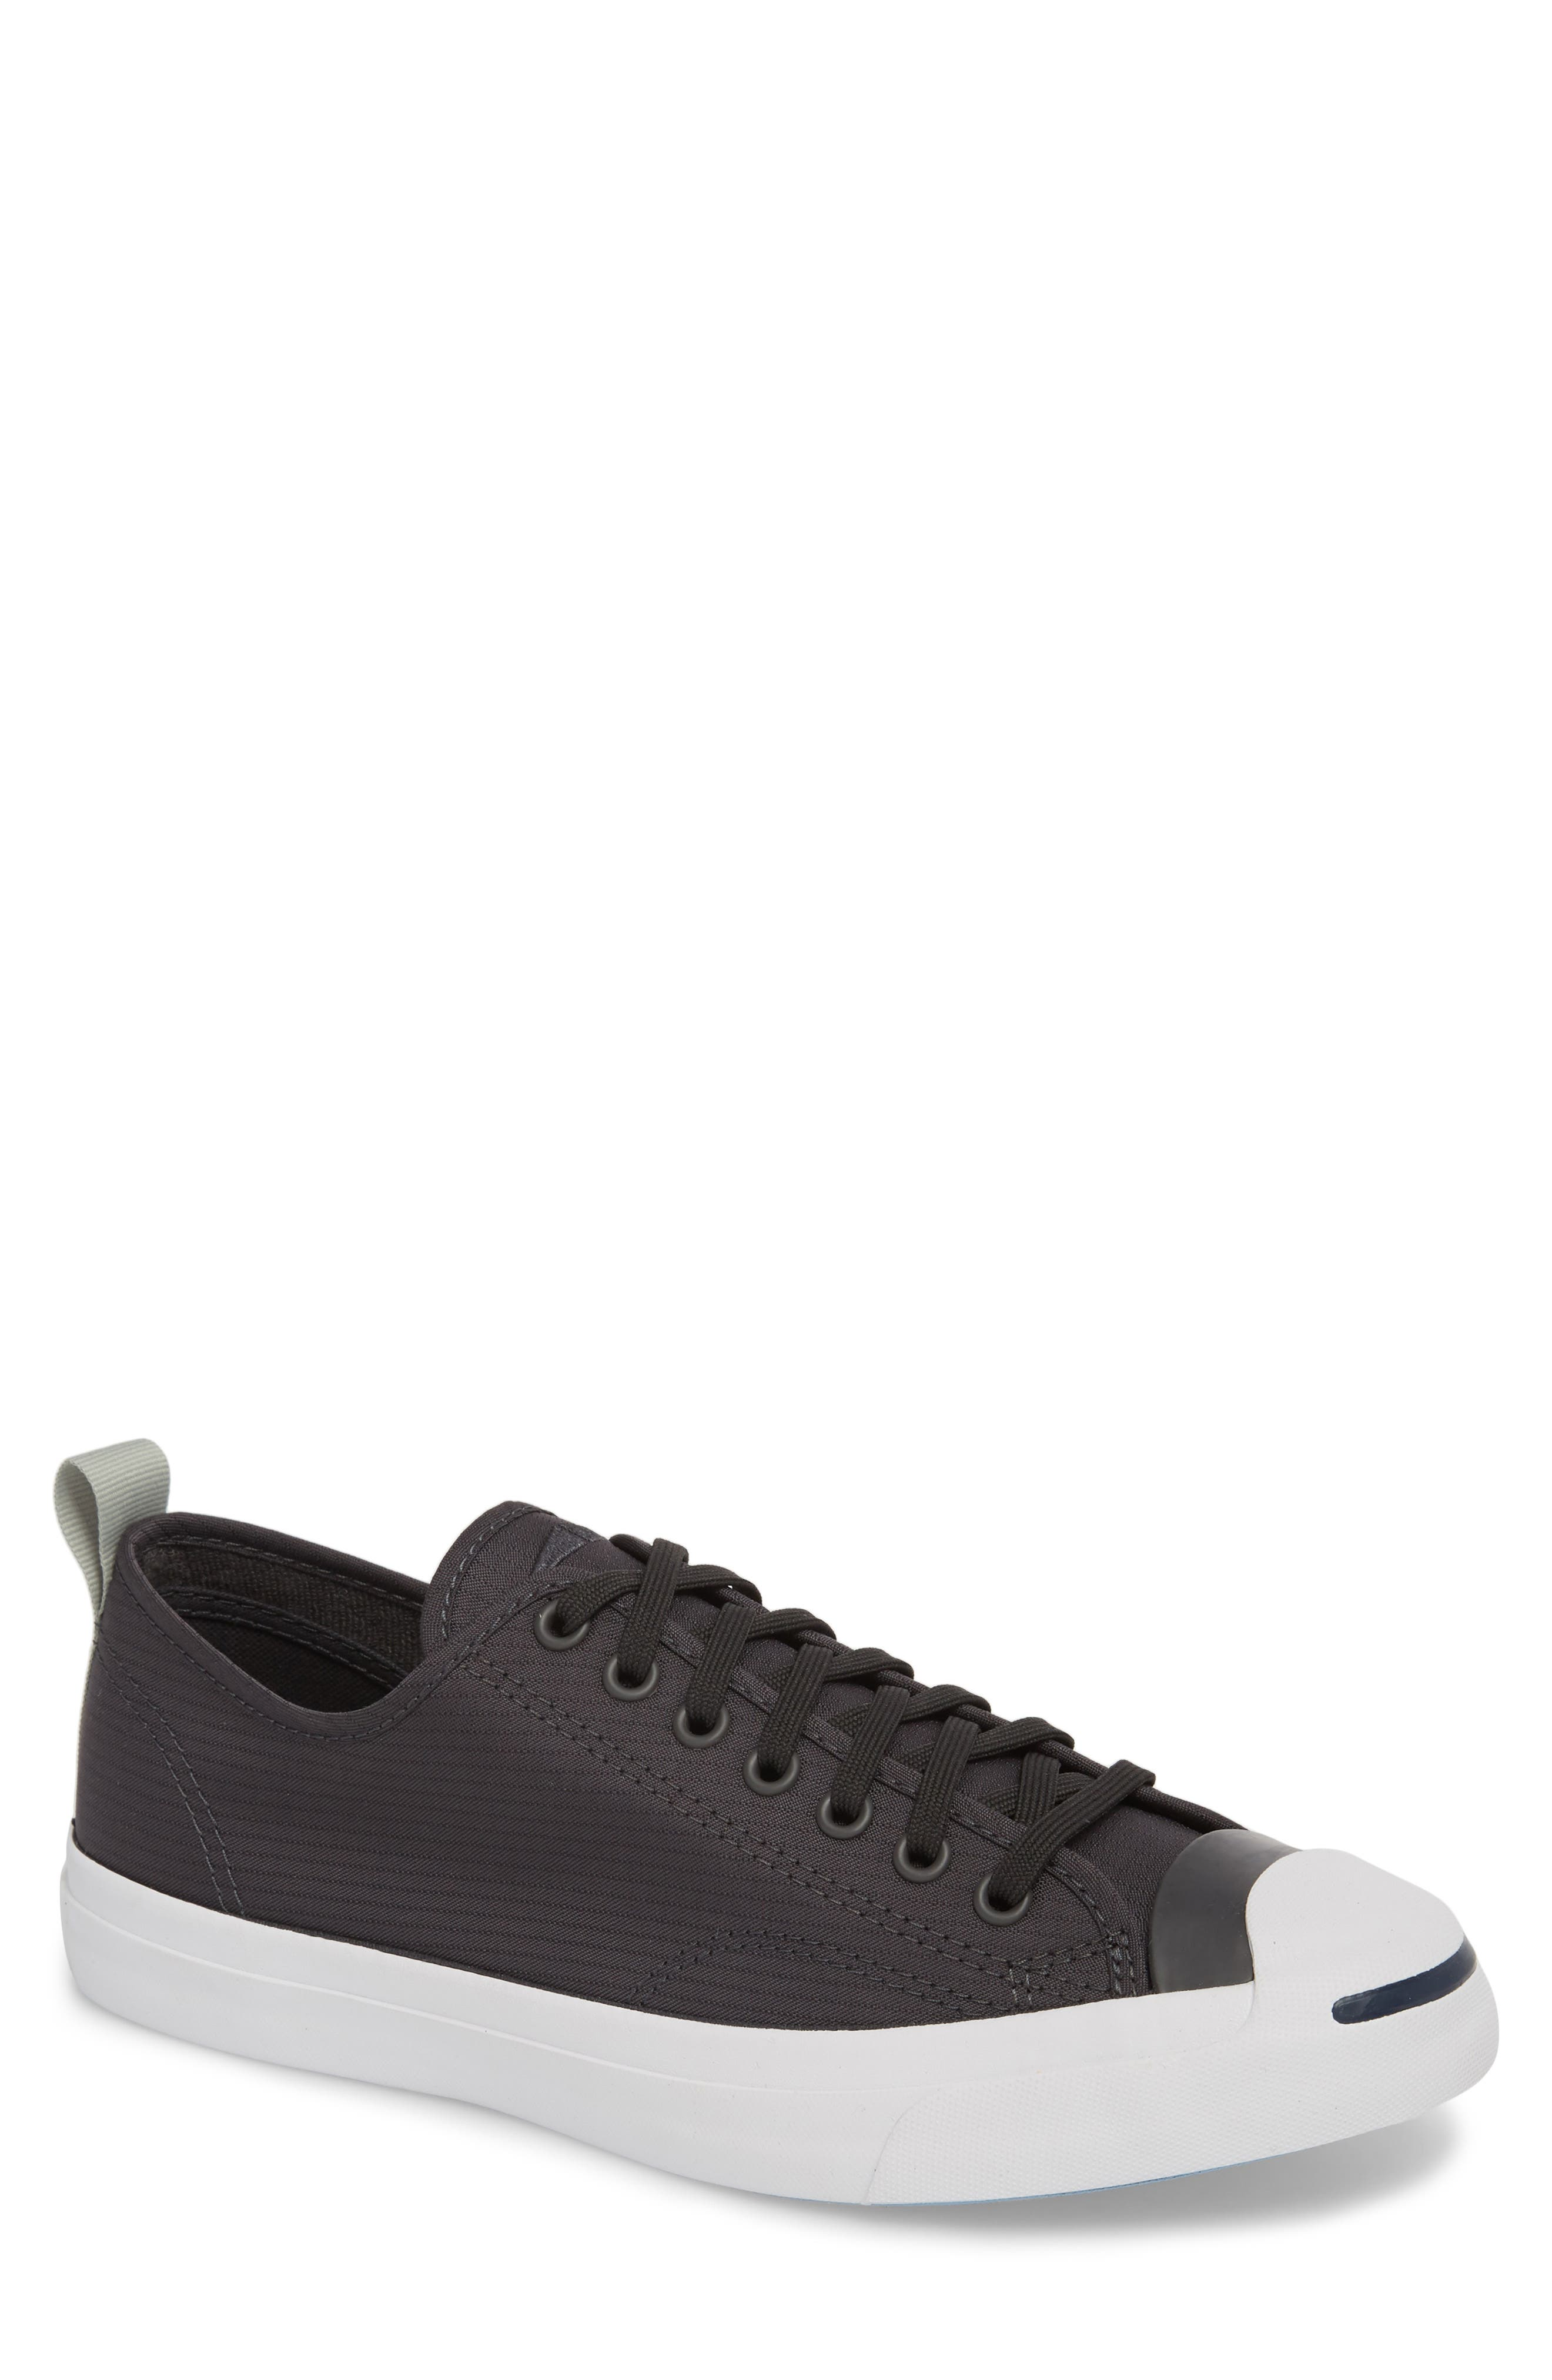 Jack Purcell Ripstop Sneaker,                             Main thumbnail 1, color,                             Black